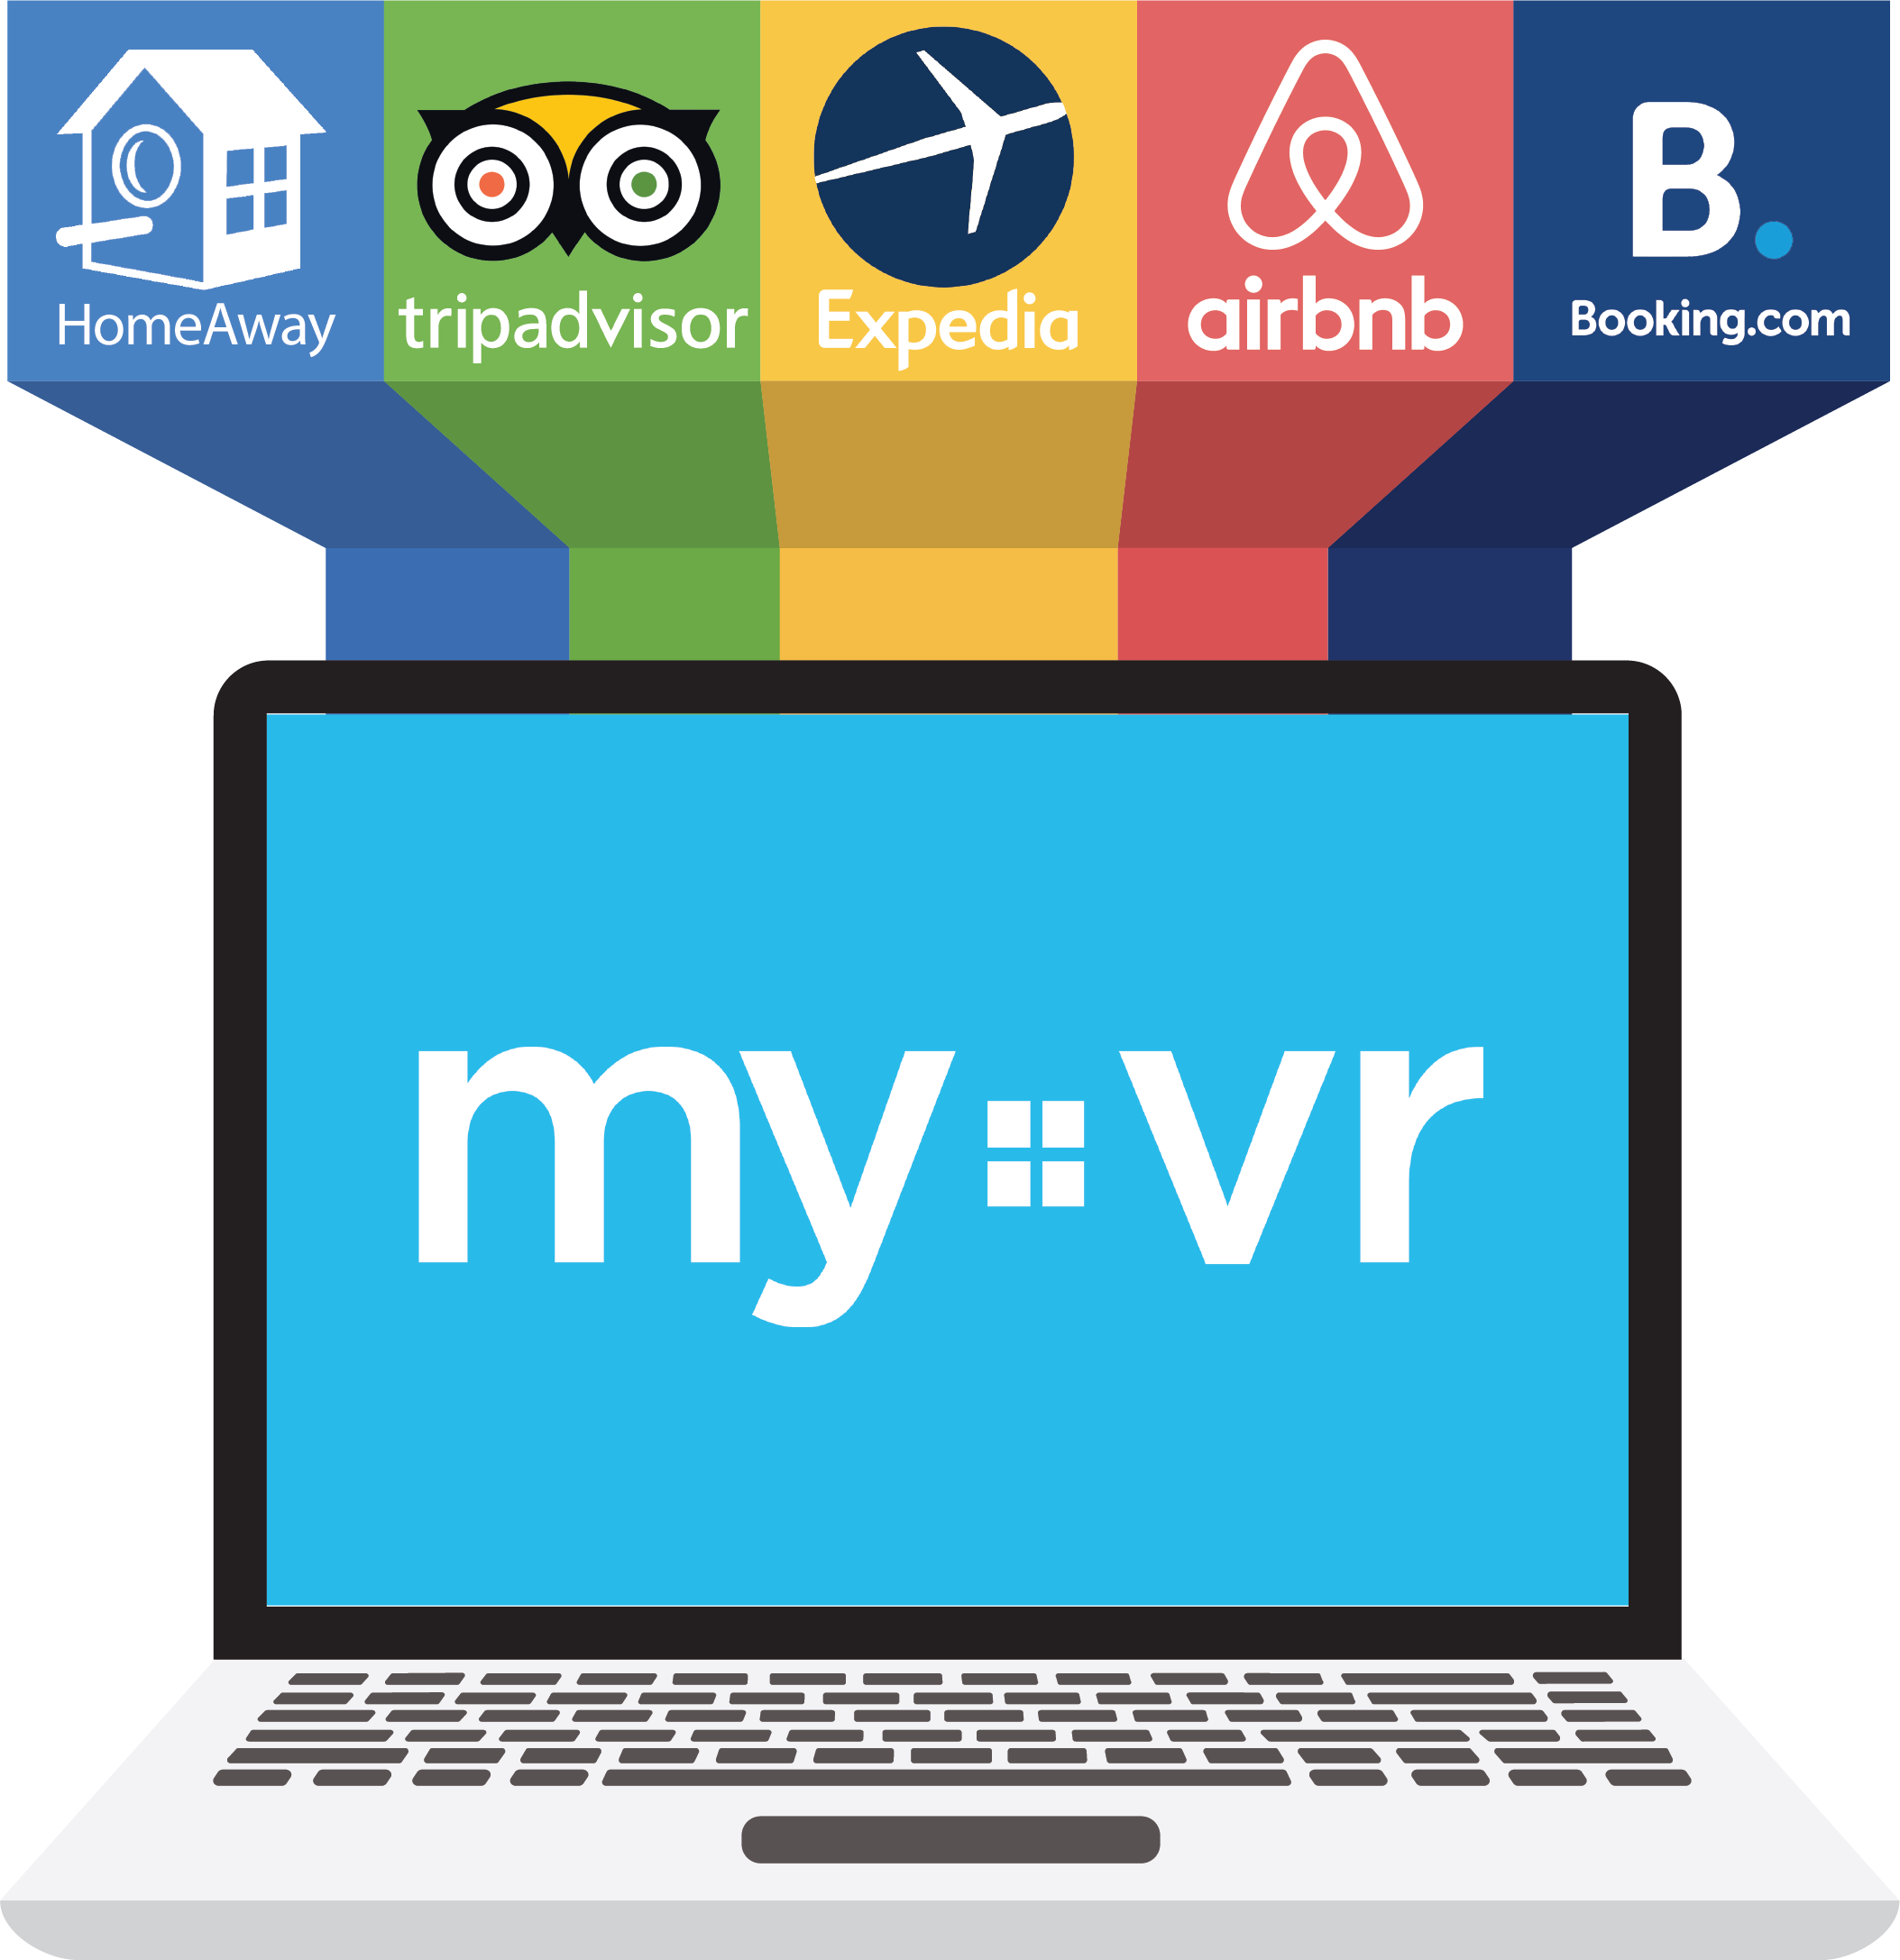 Vrbo vs Airbnb vs HomeAway vs Bookingcom vs Expedia